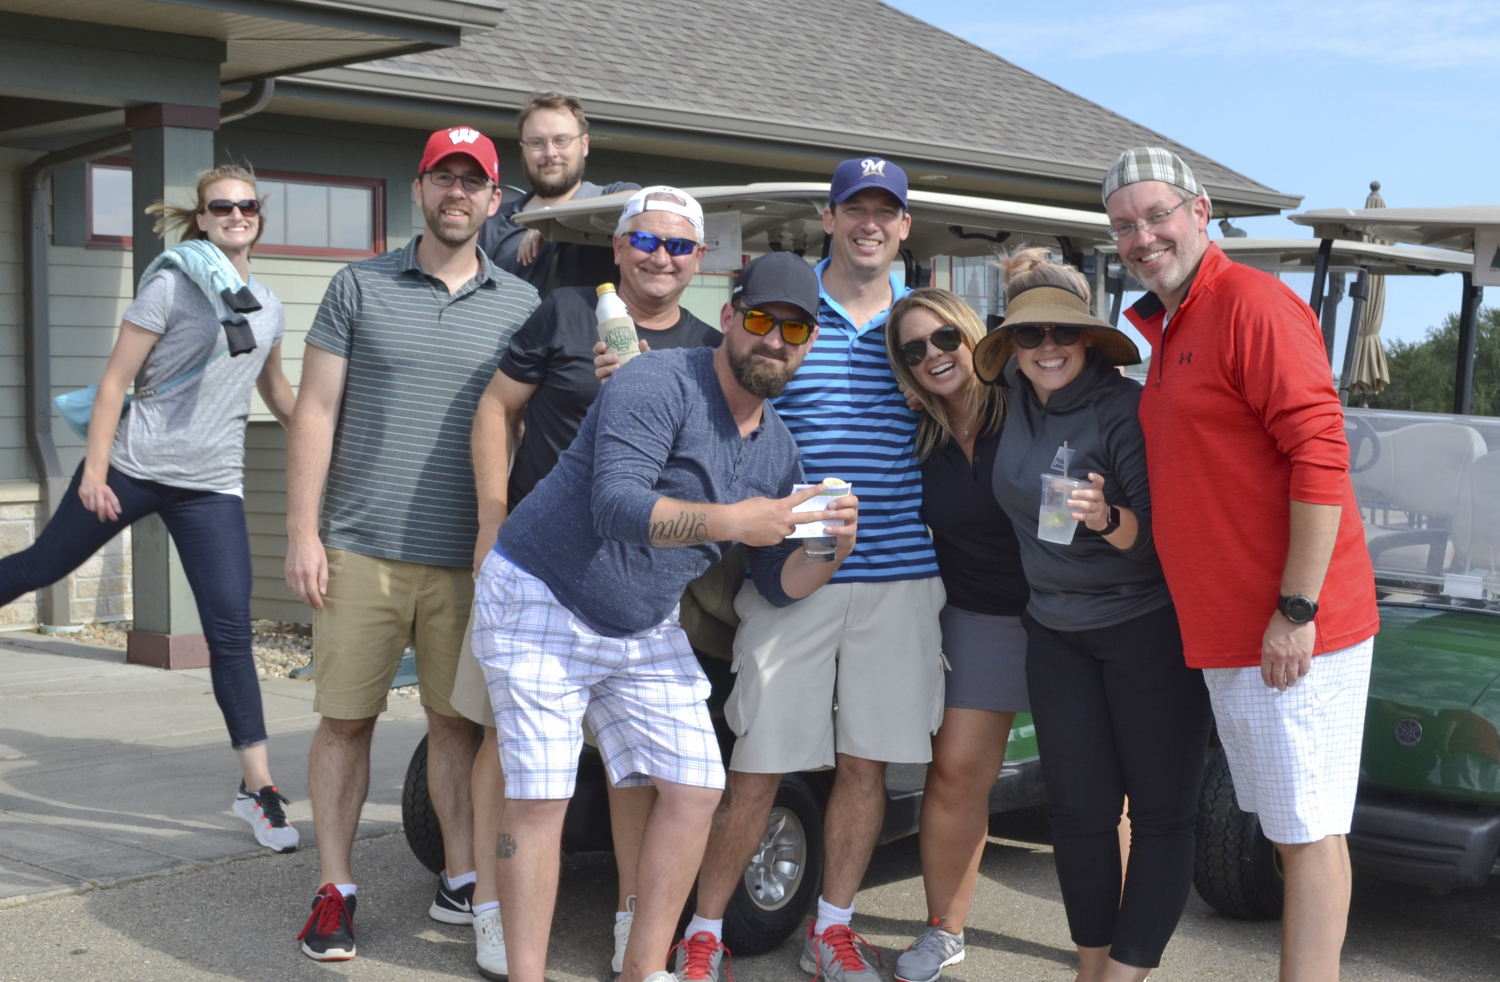 Group staff photo of 9 people smiling together at a golf clubhouse.